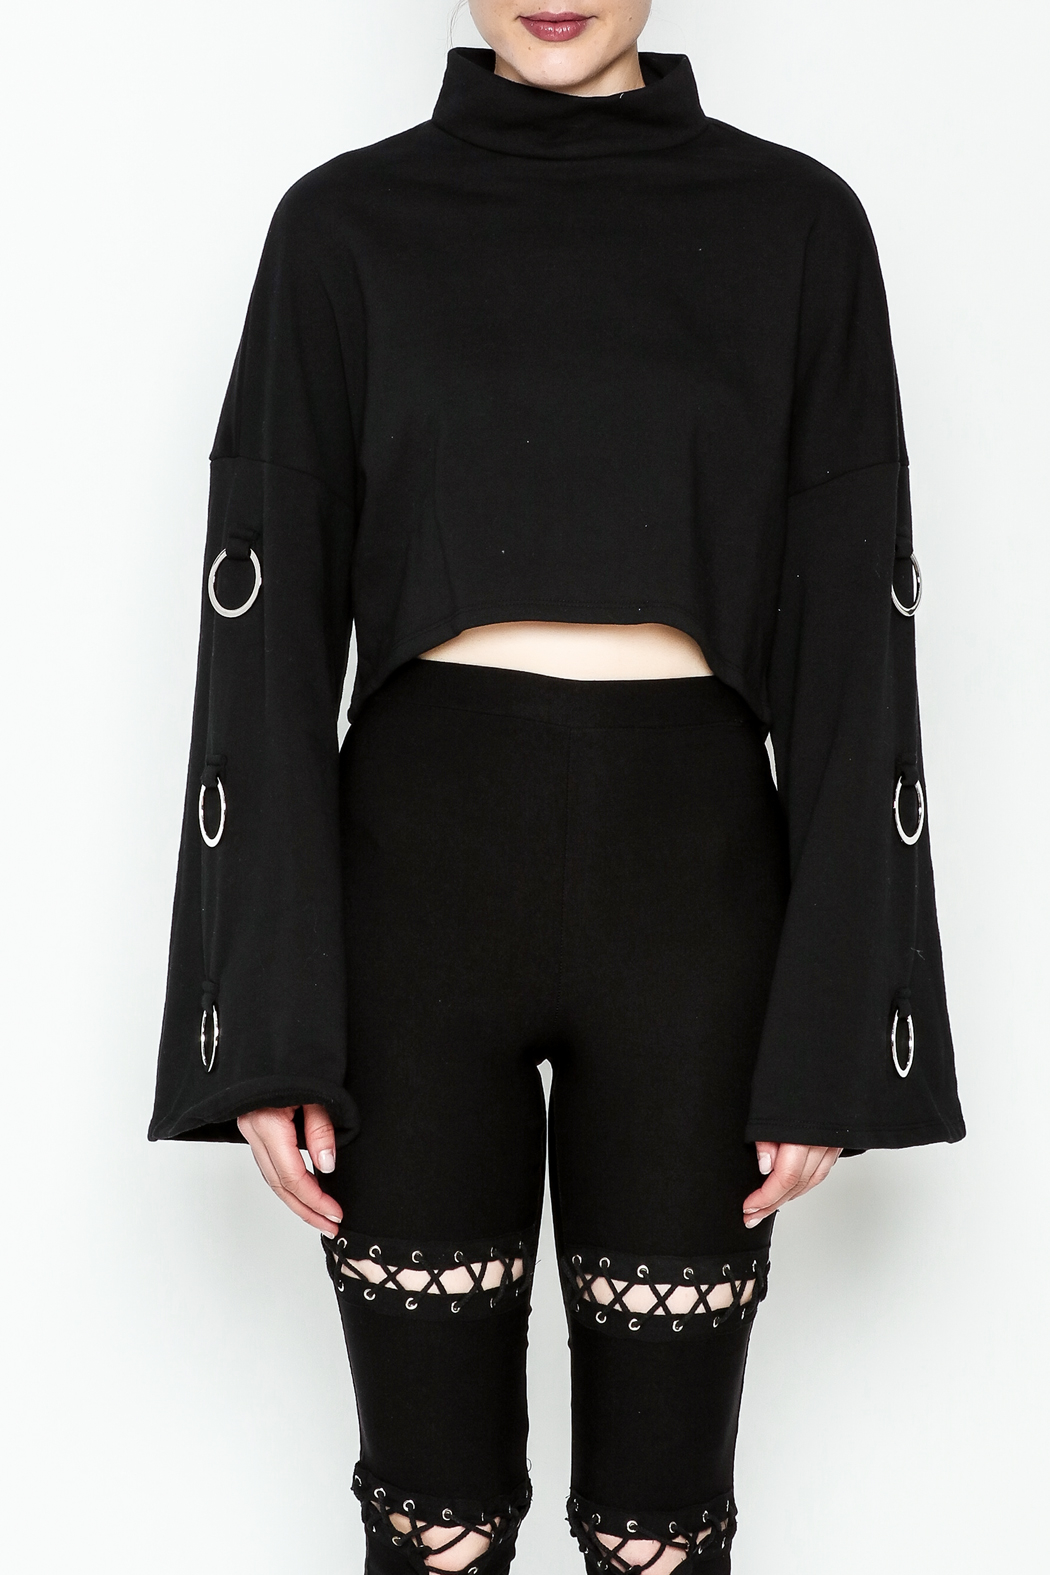 TIMELESS Asher Crop Sweater - Front Full Image